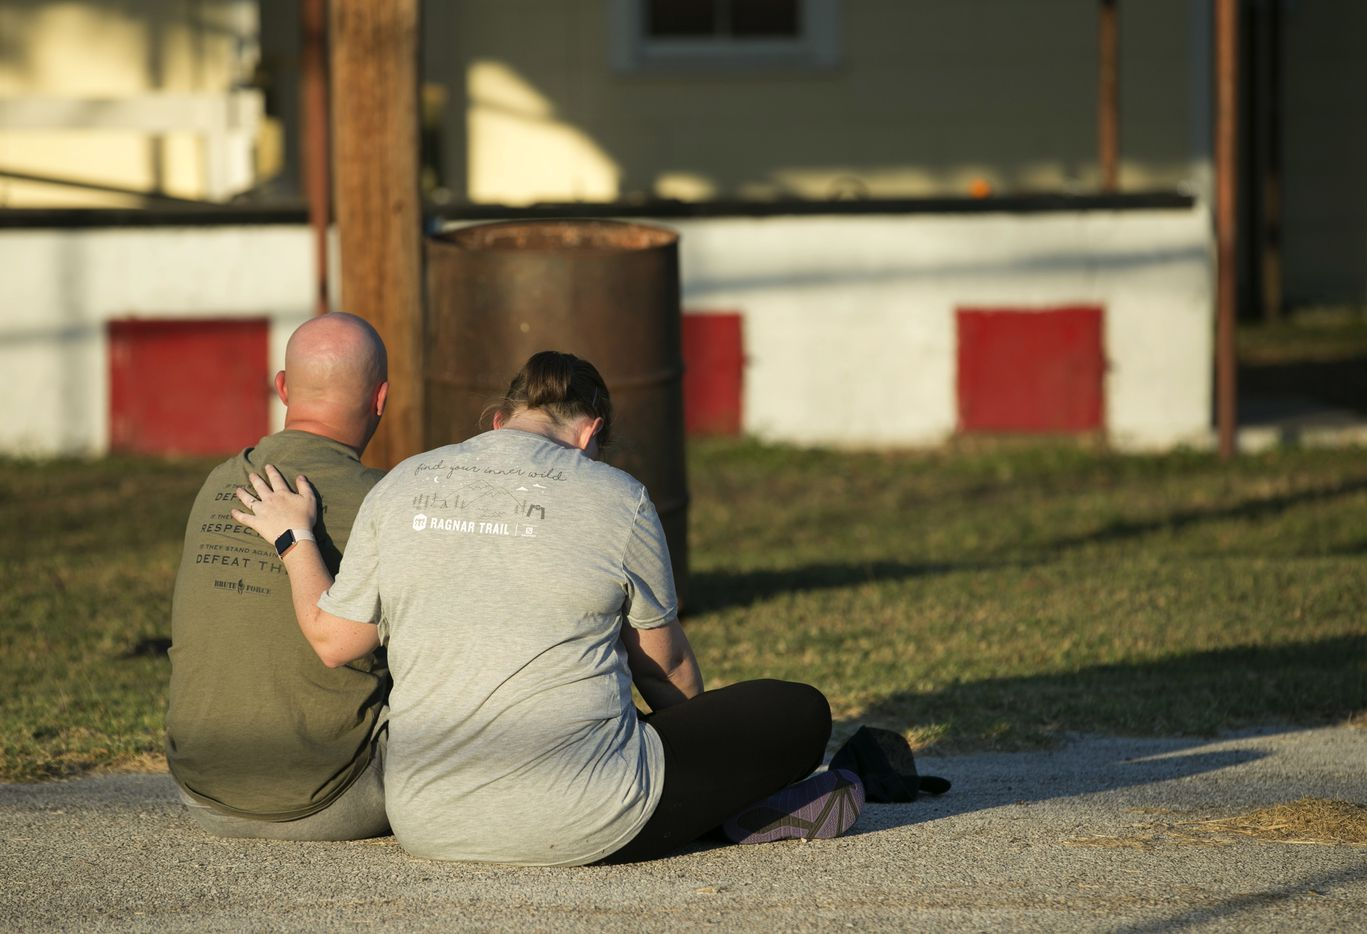 A couple comfort each other at a community center in Sutherland Springs, Texas, near the scene of a mass shooting at the First Baptist Church on Sunday, Nov. 5, 2017.